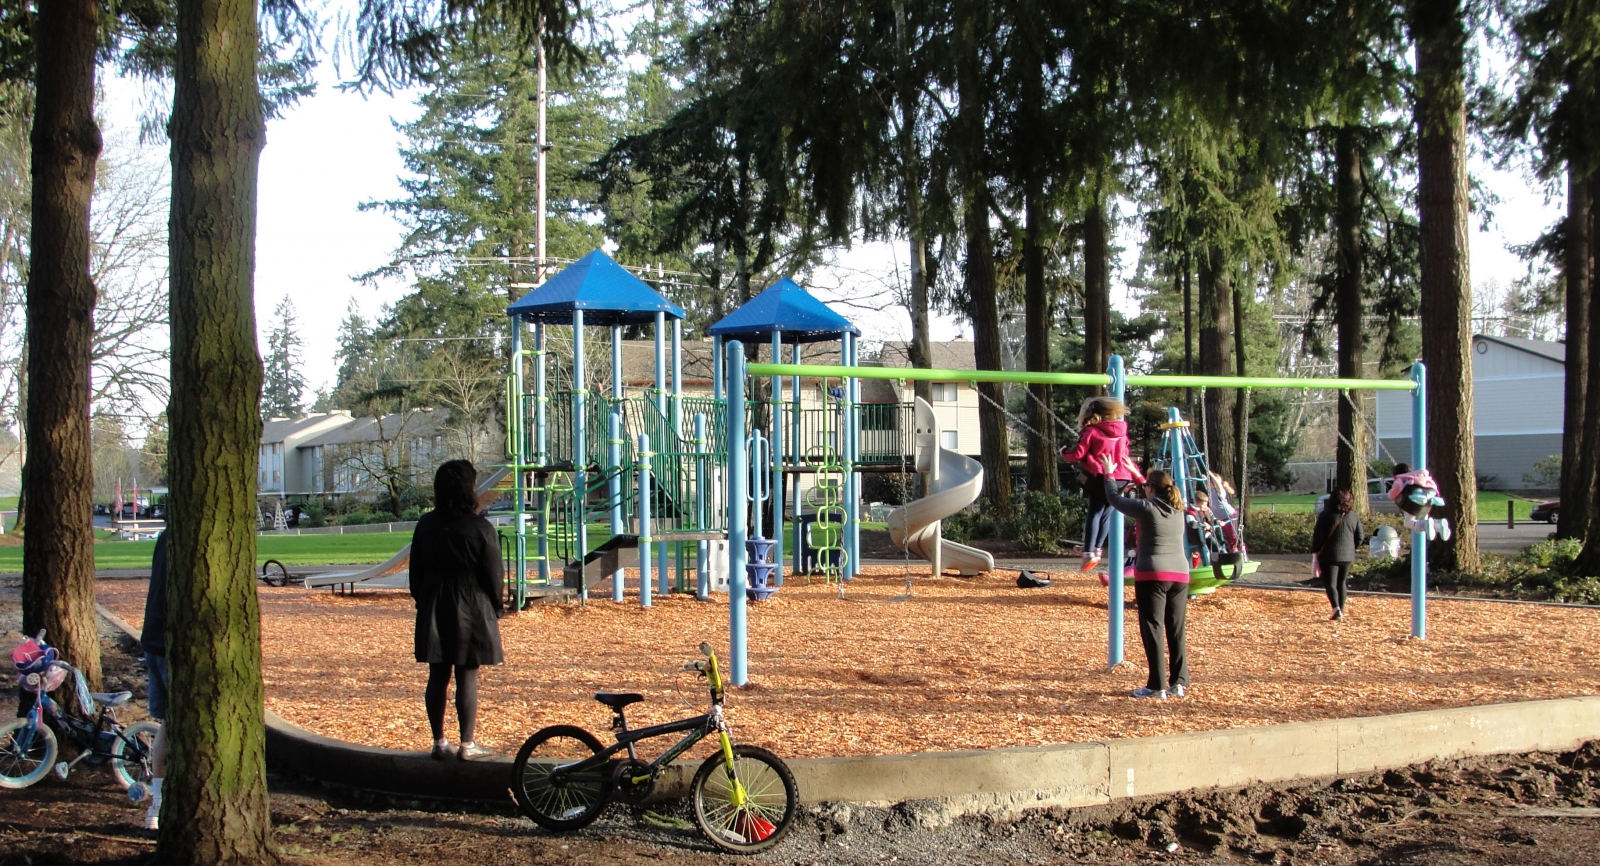 New play equipment at Stockford Village Neighborhood Park.